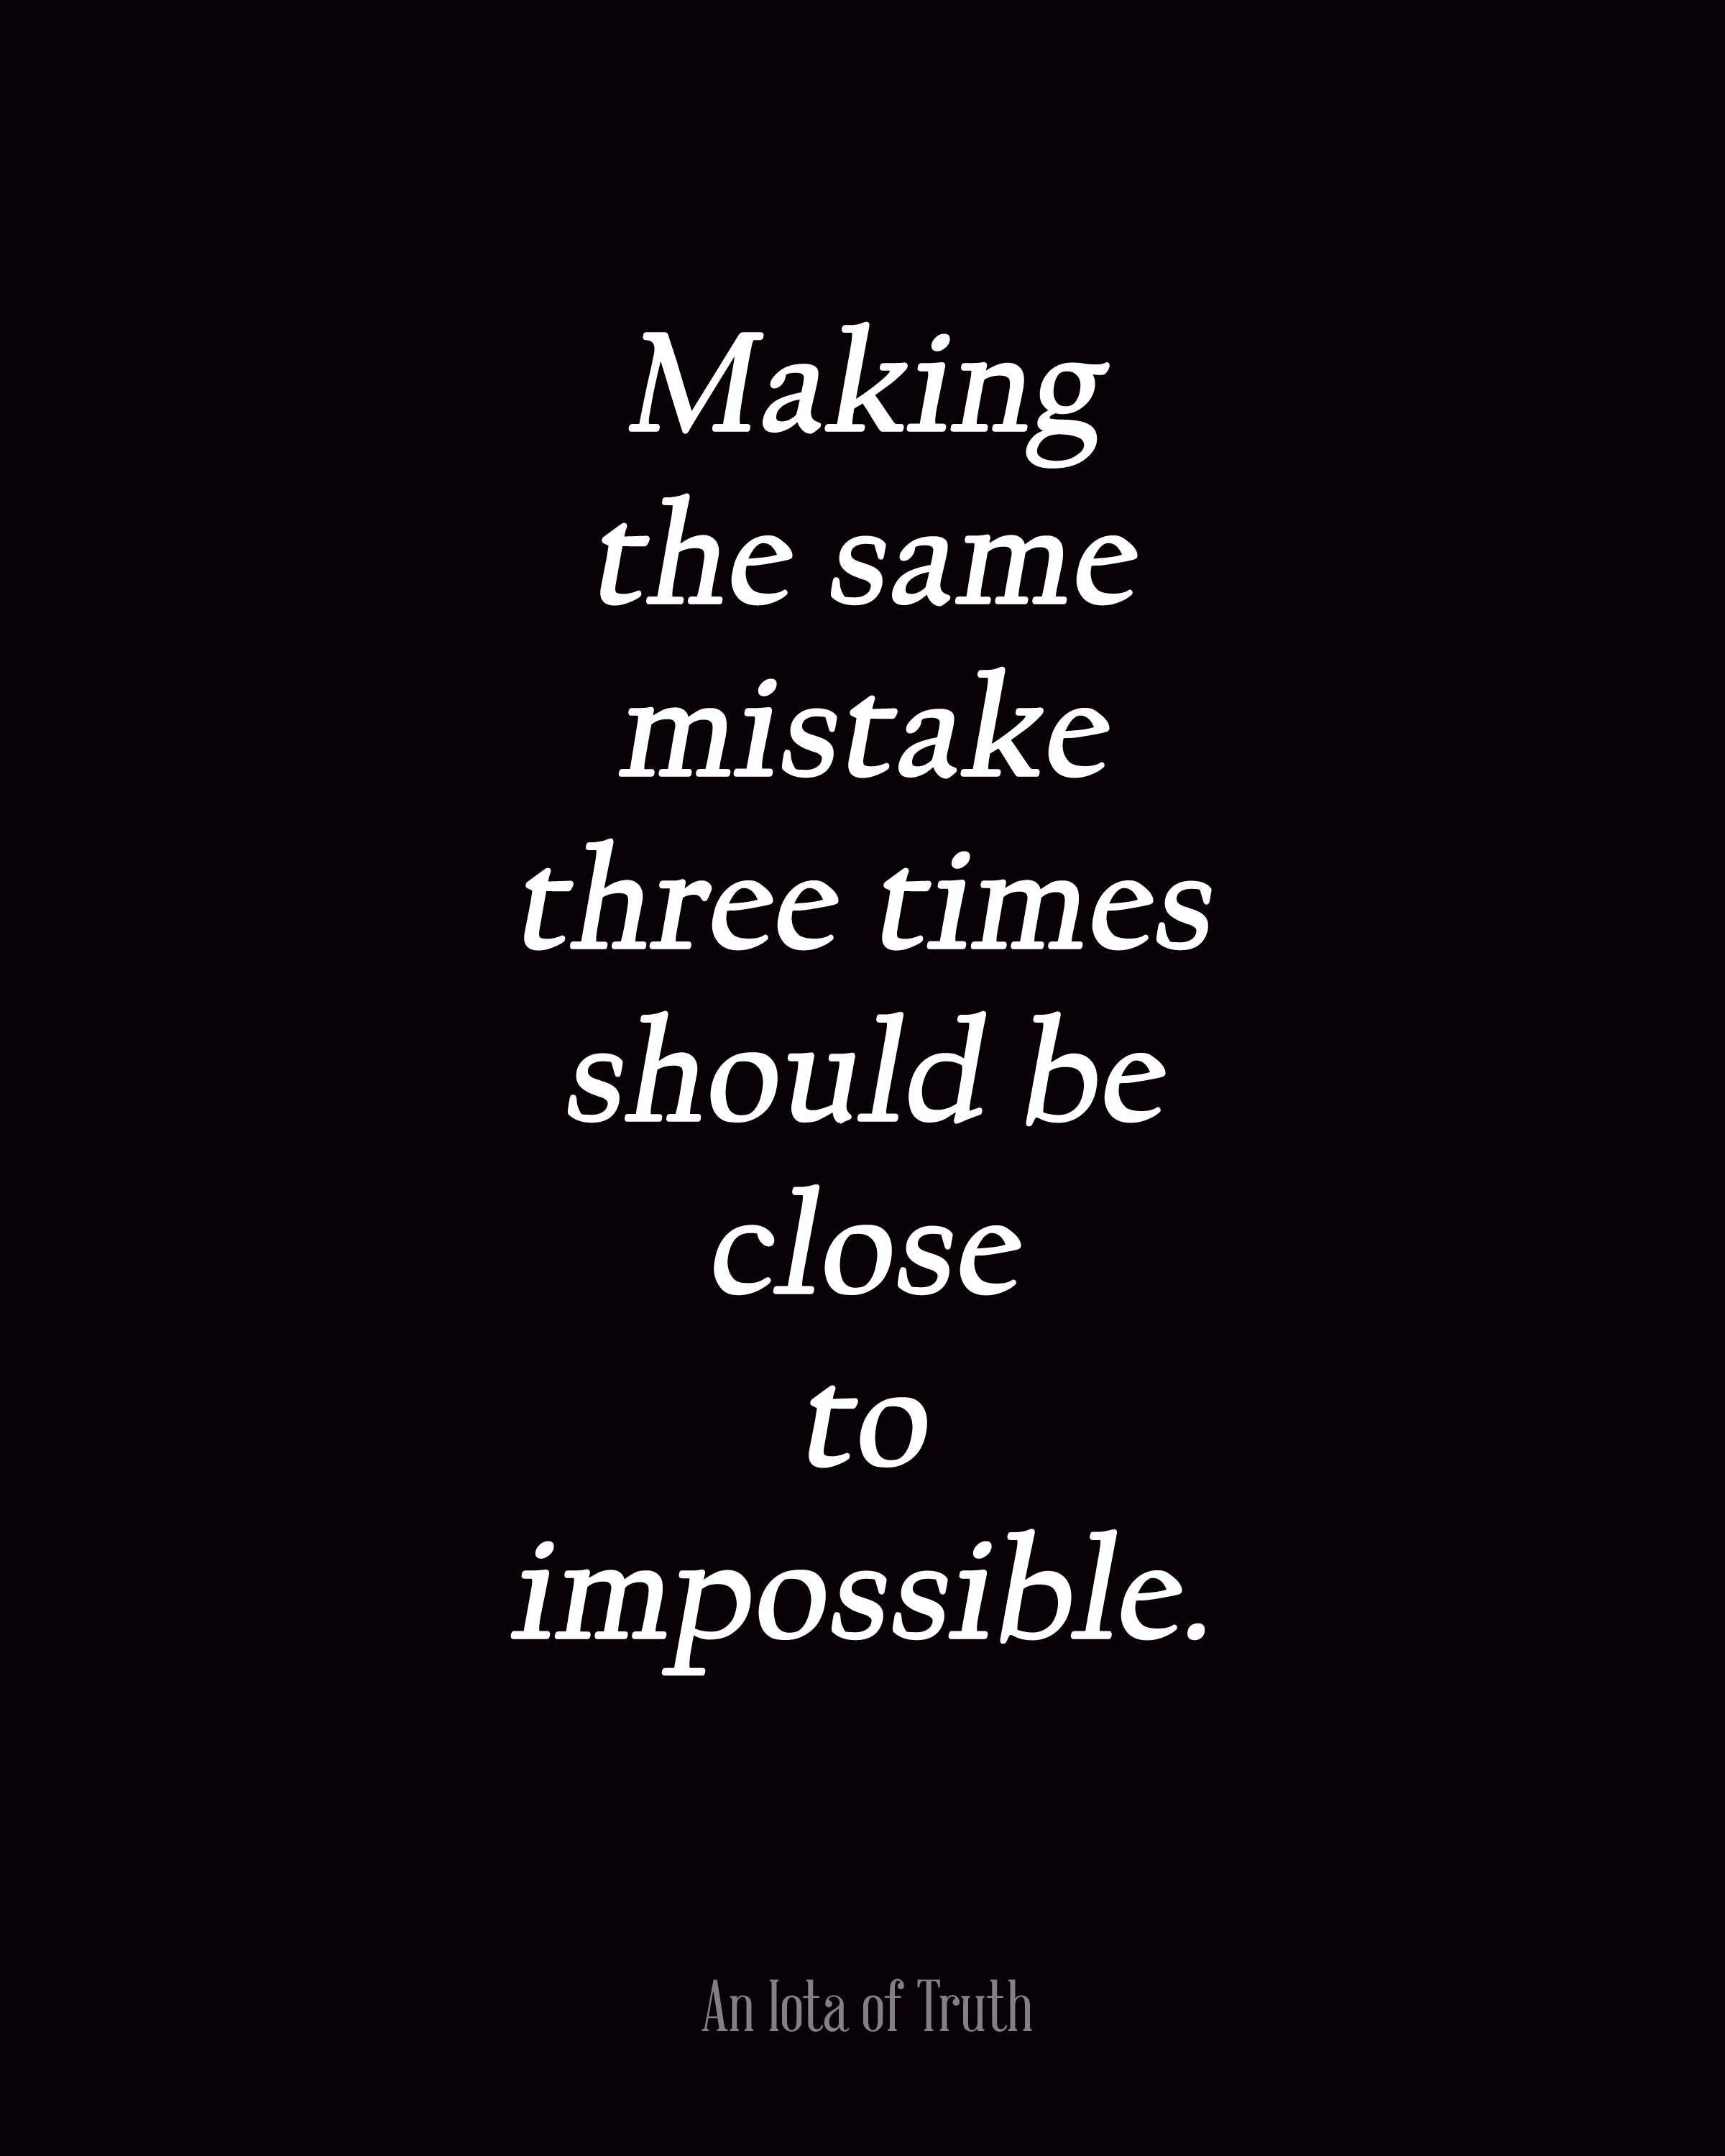 Making The Same Mistakes Over And Over Again Quotes: Making The Same Mistakes Quotes. QuotesGram